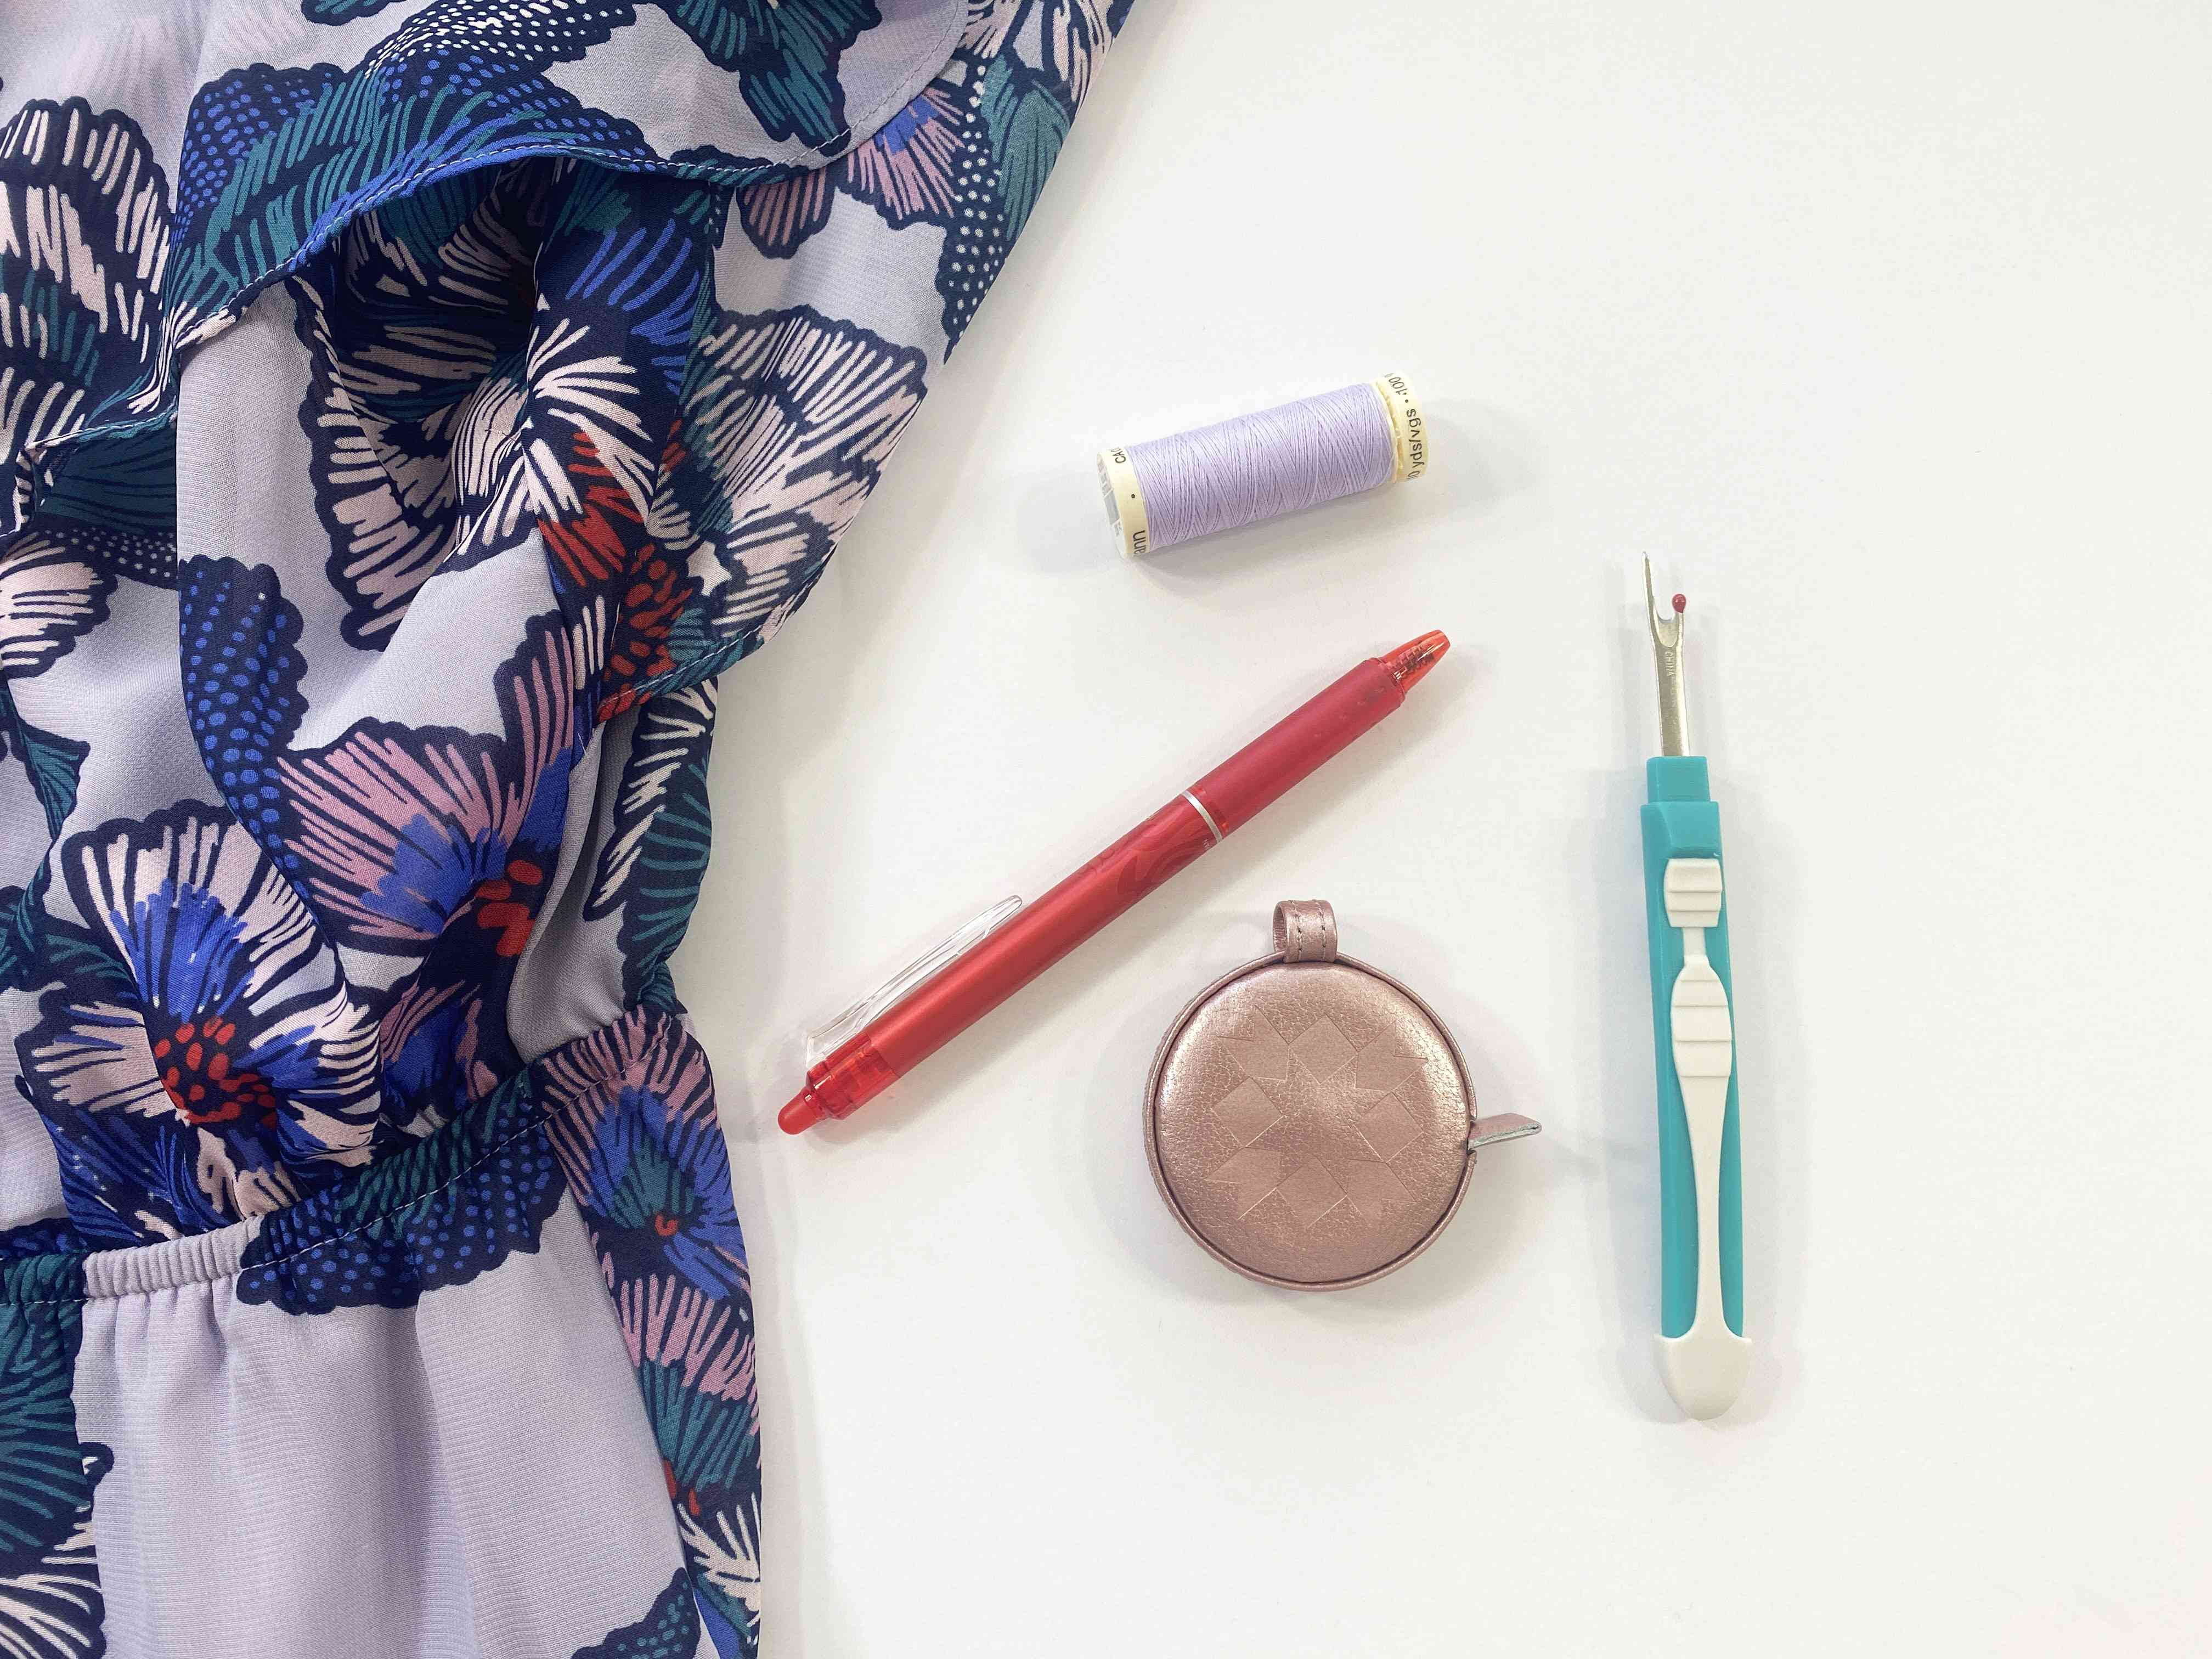 A dress, thread, pen, seam ripper, and measuring tape